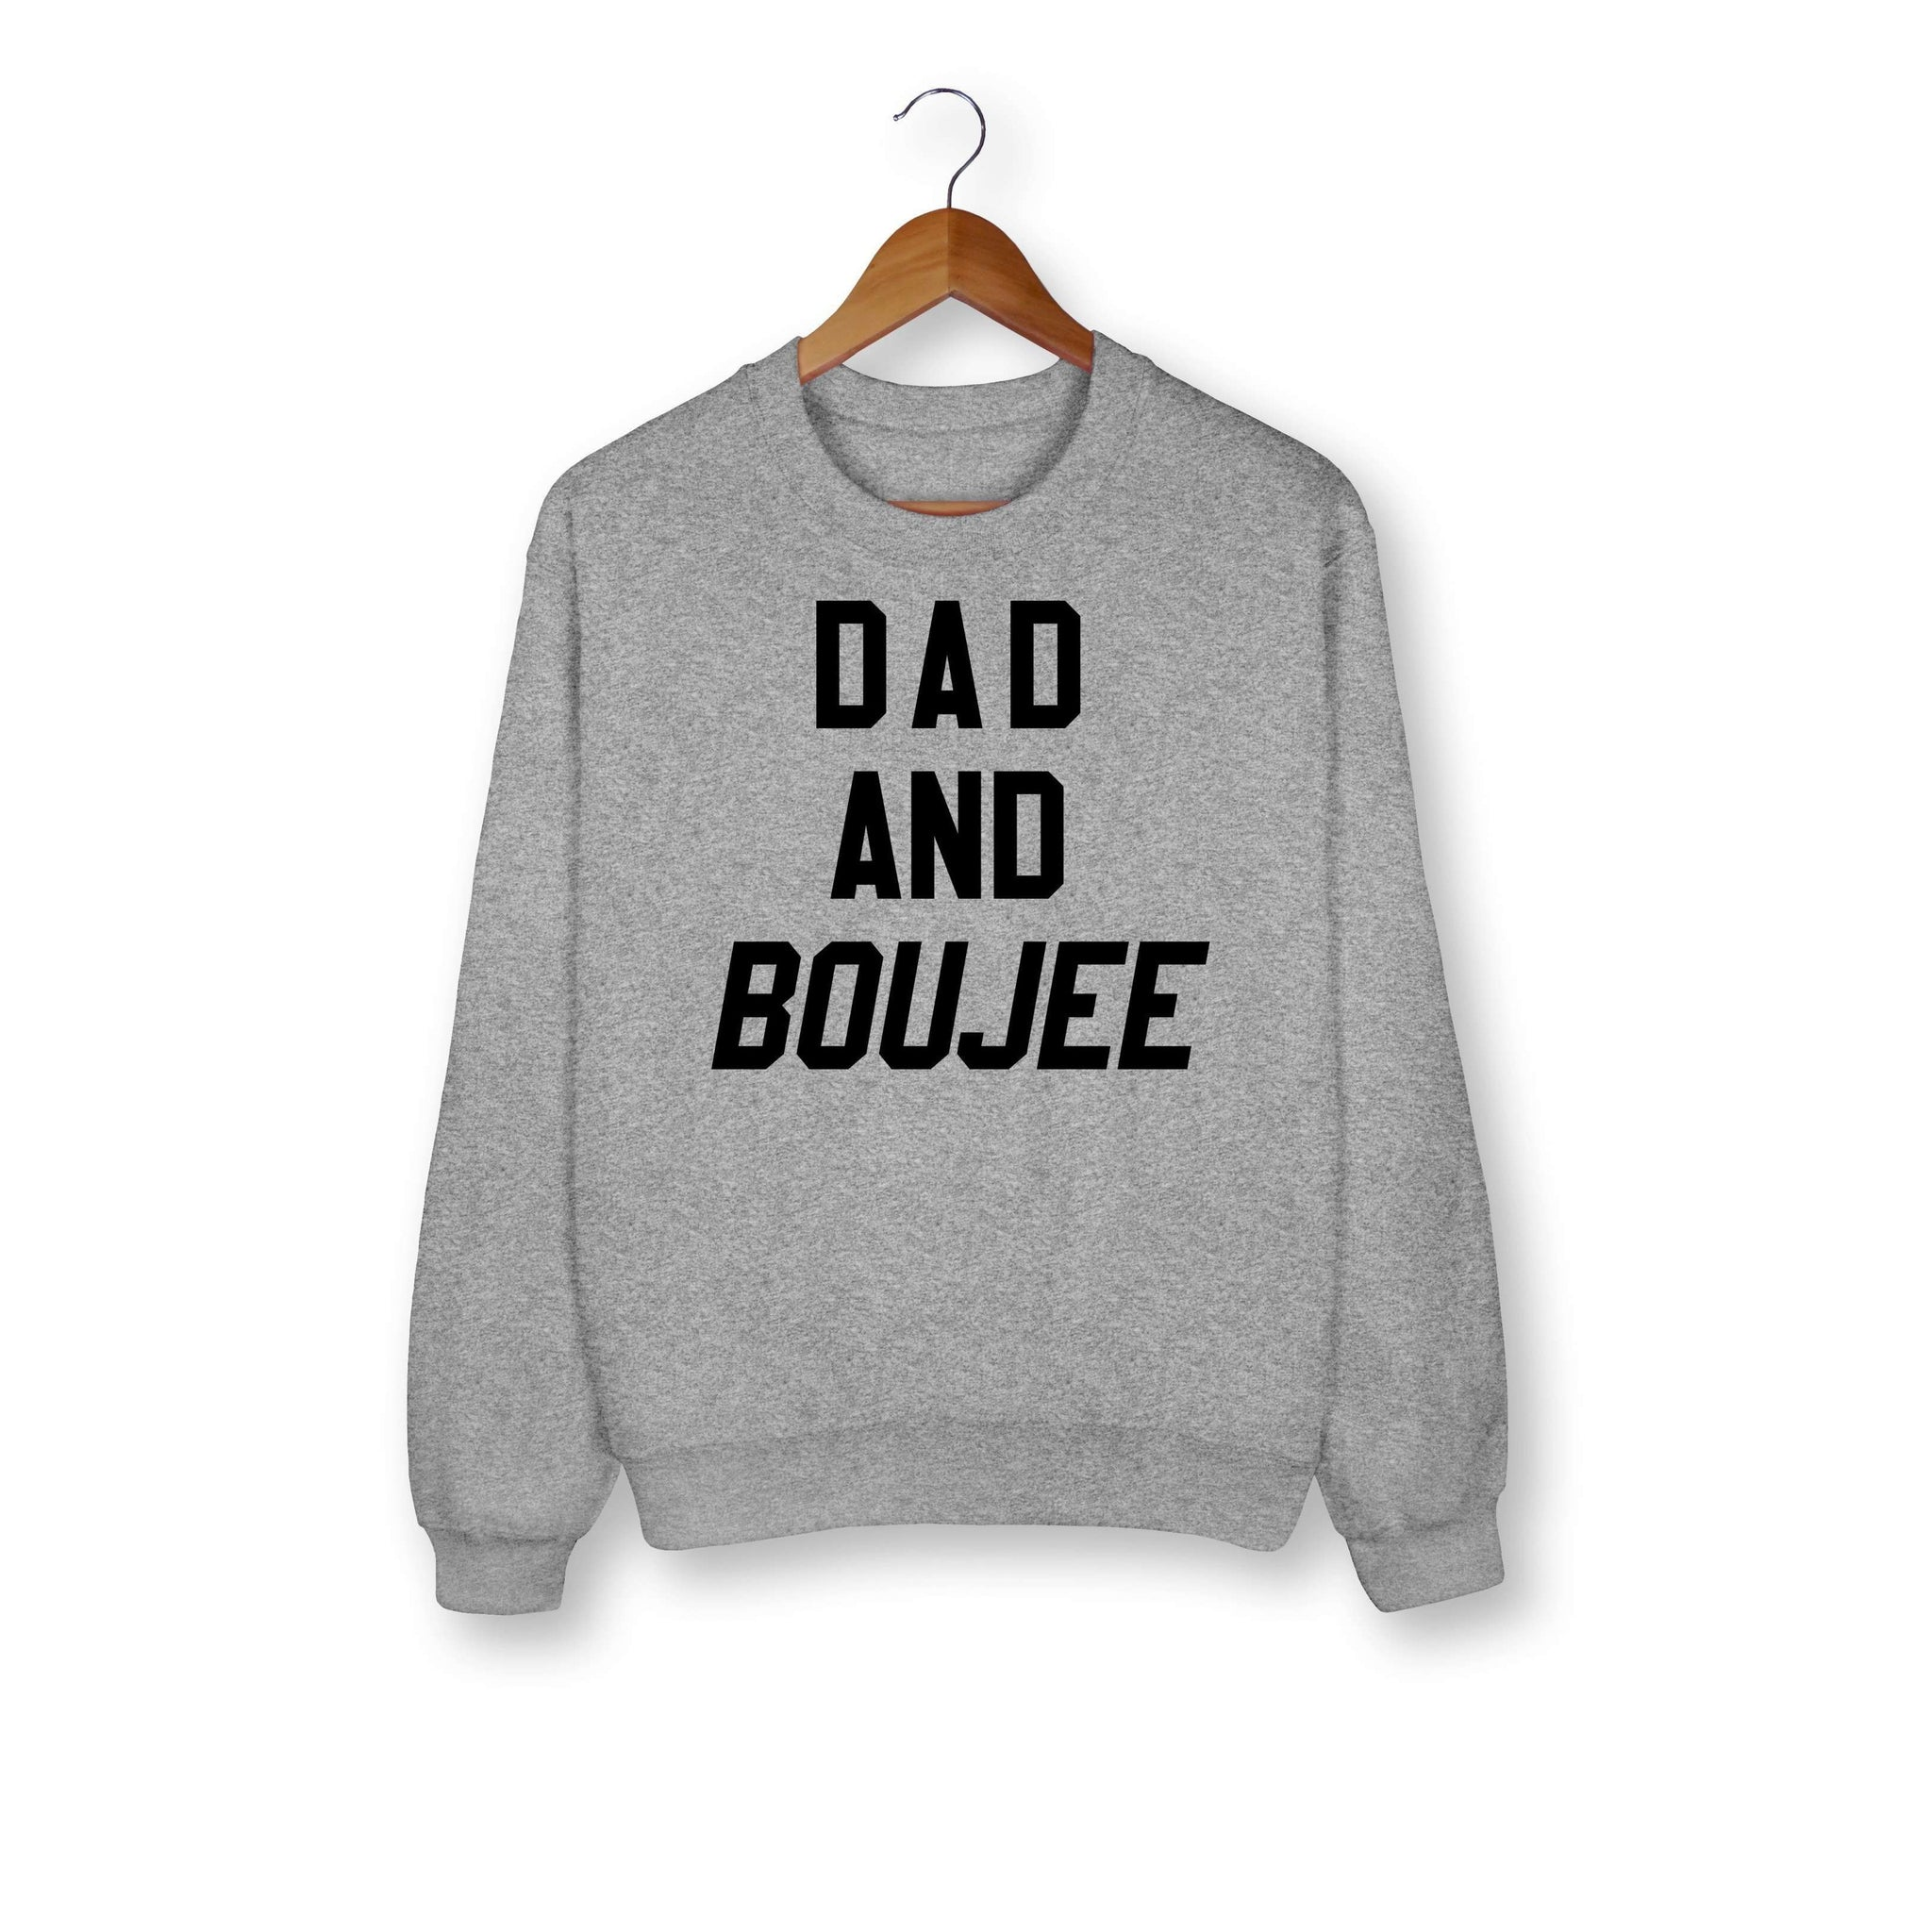 Dad And Boujee Sweatshirt